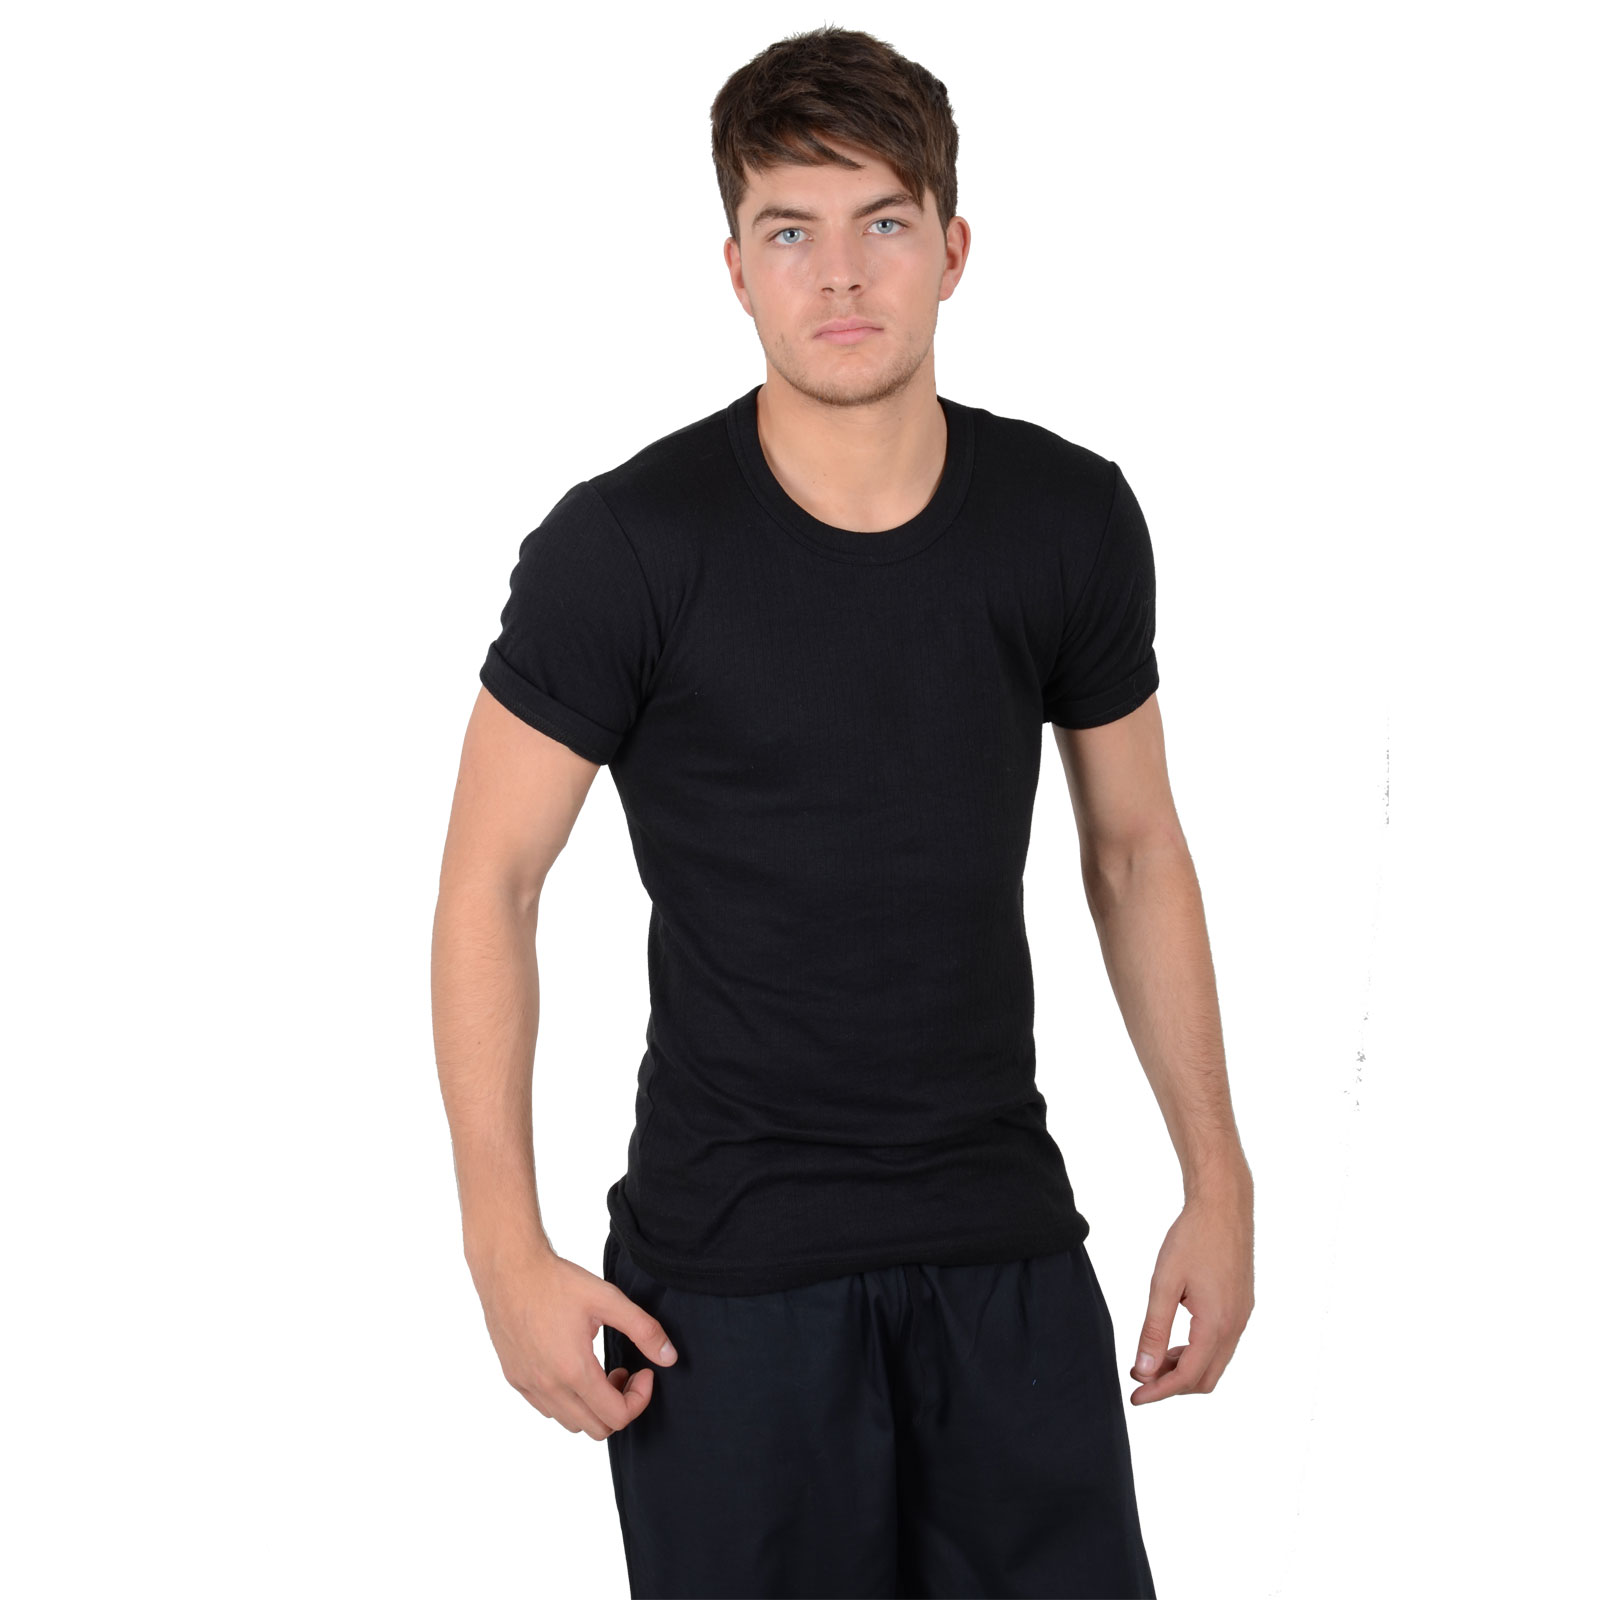 Black t shirt guy - Men S Black Winter Thermal Underwear Crew Neck Short Sleeve T Shirt Vest Top New